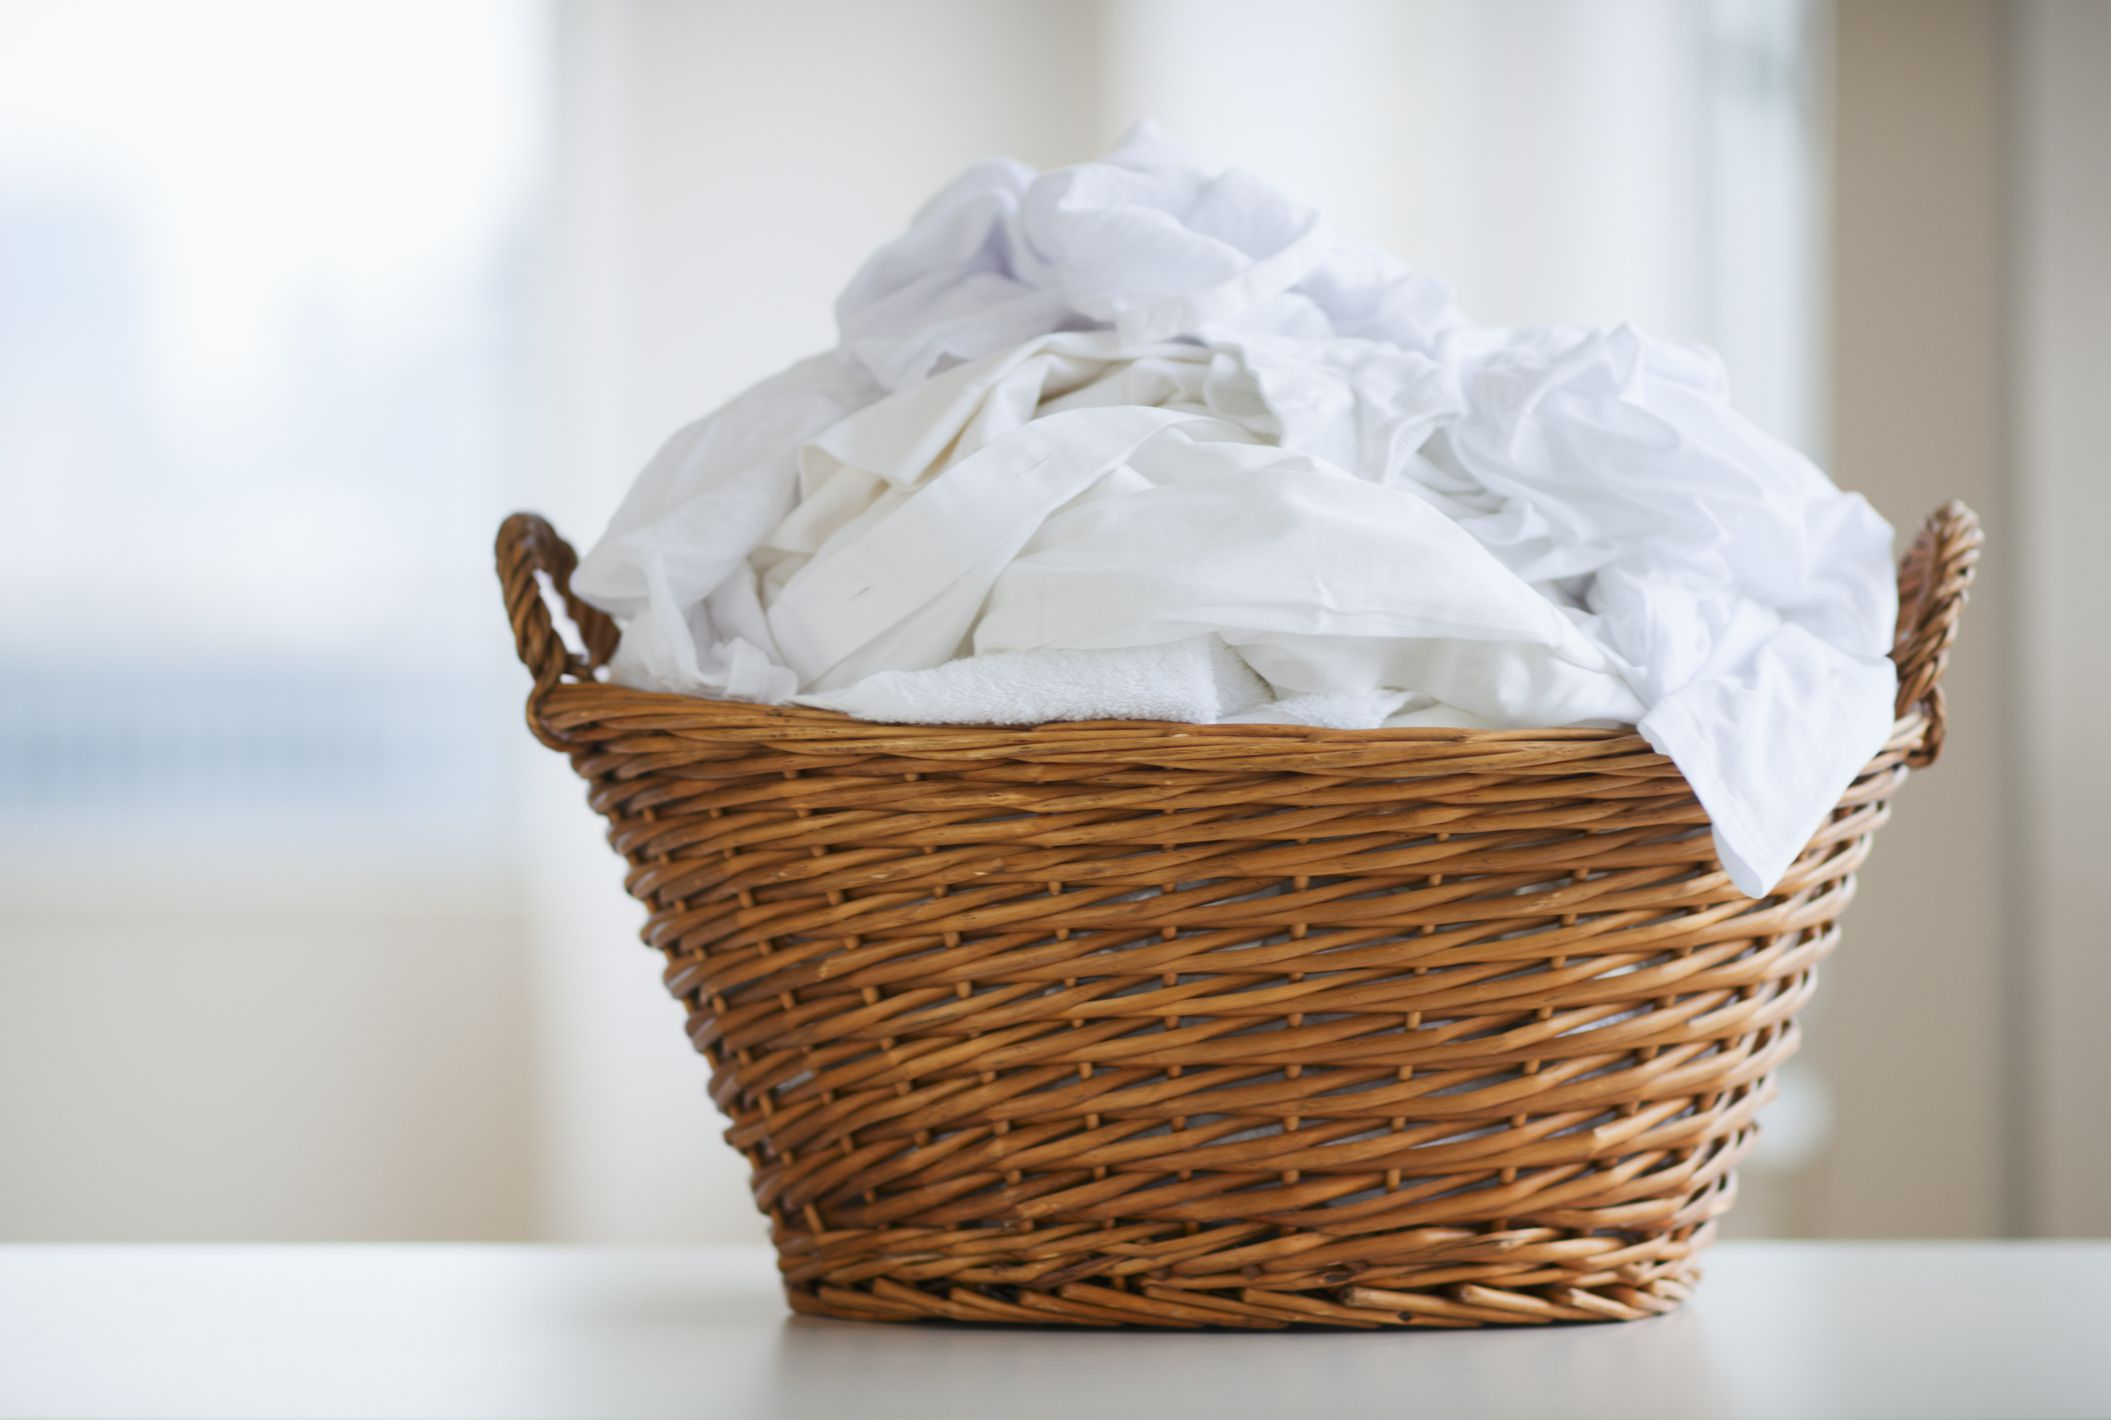 How To Use Bleach To Clean Clothes